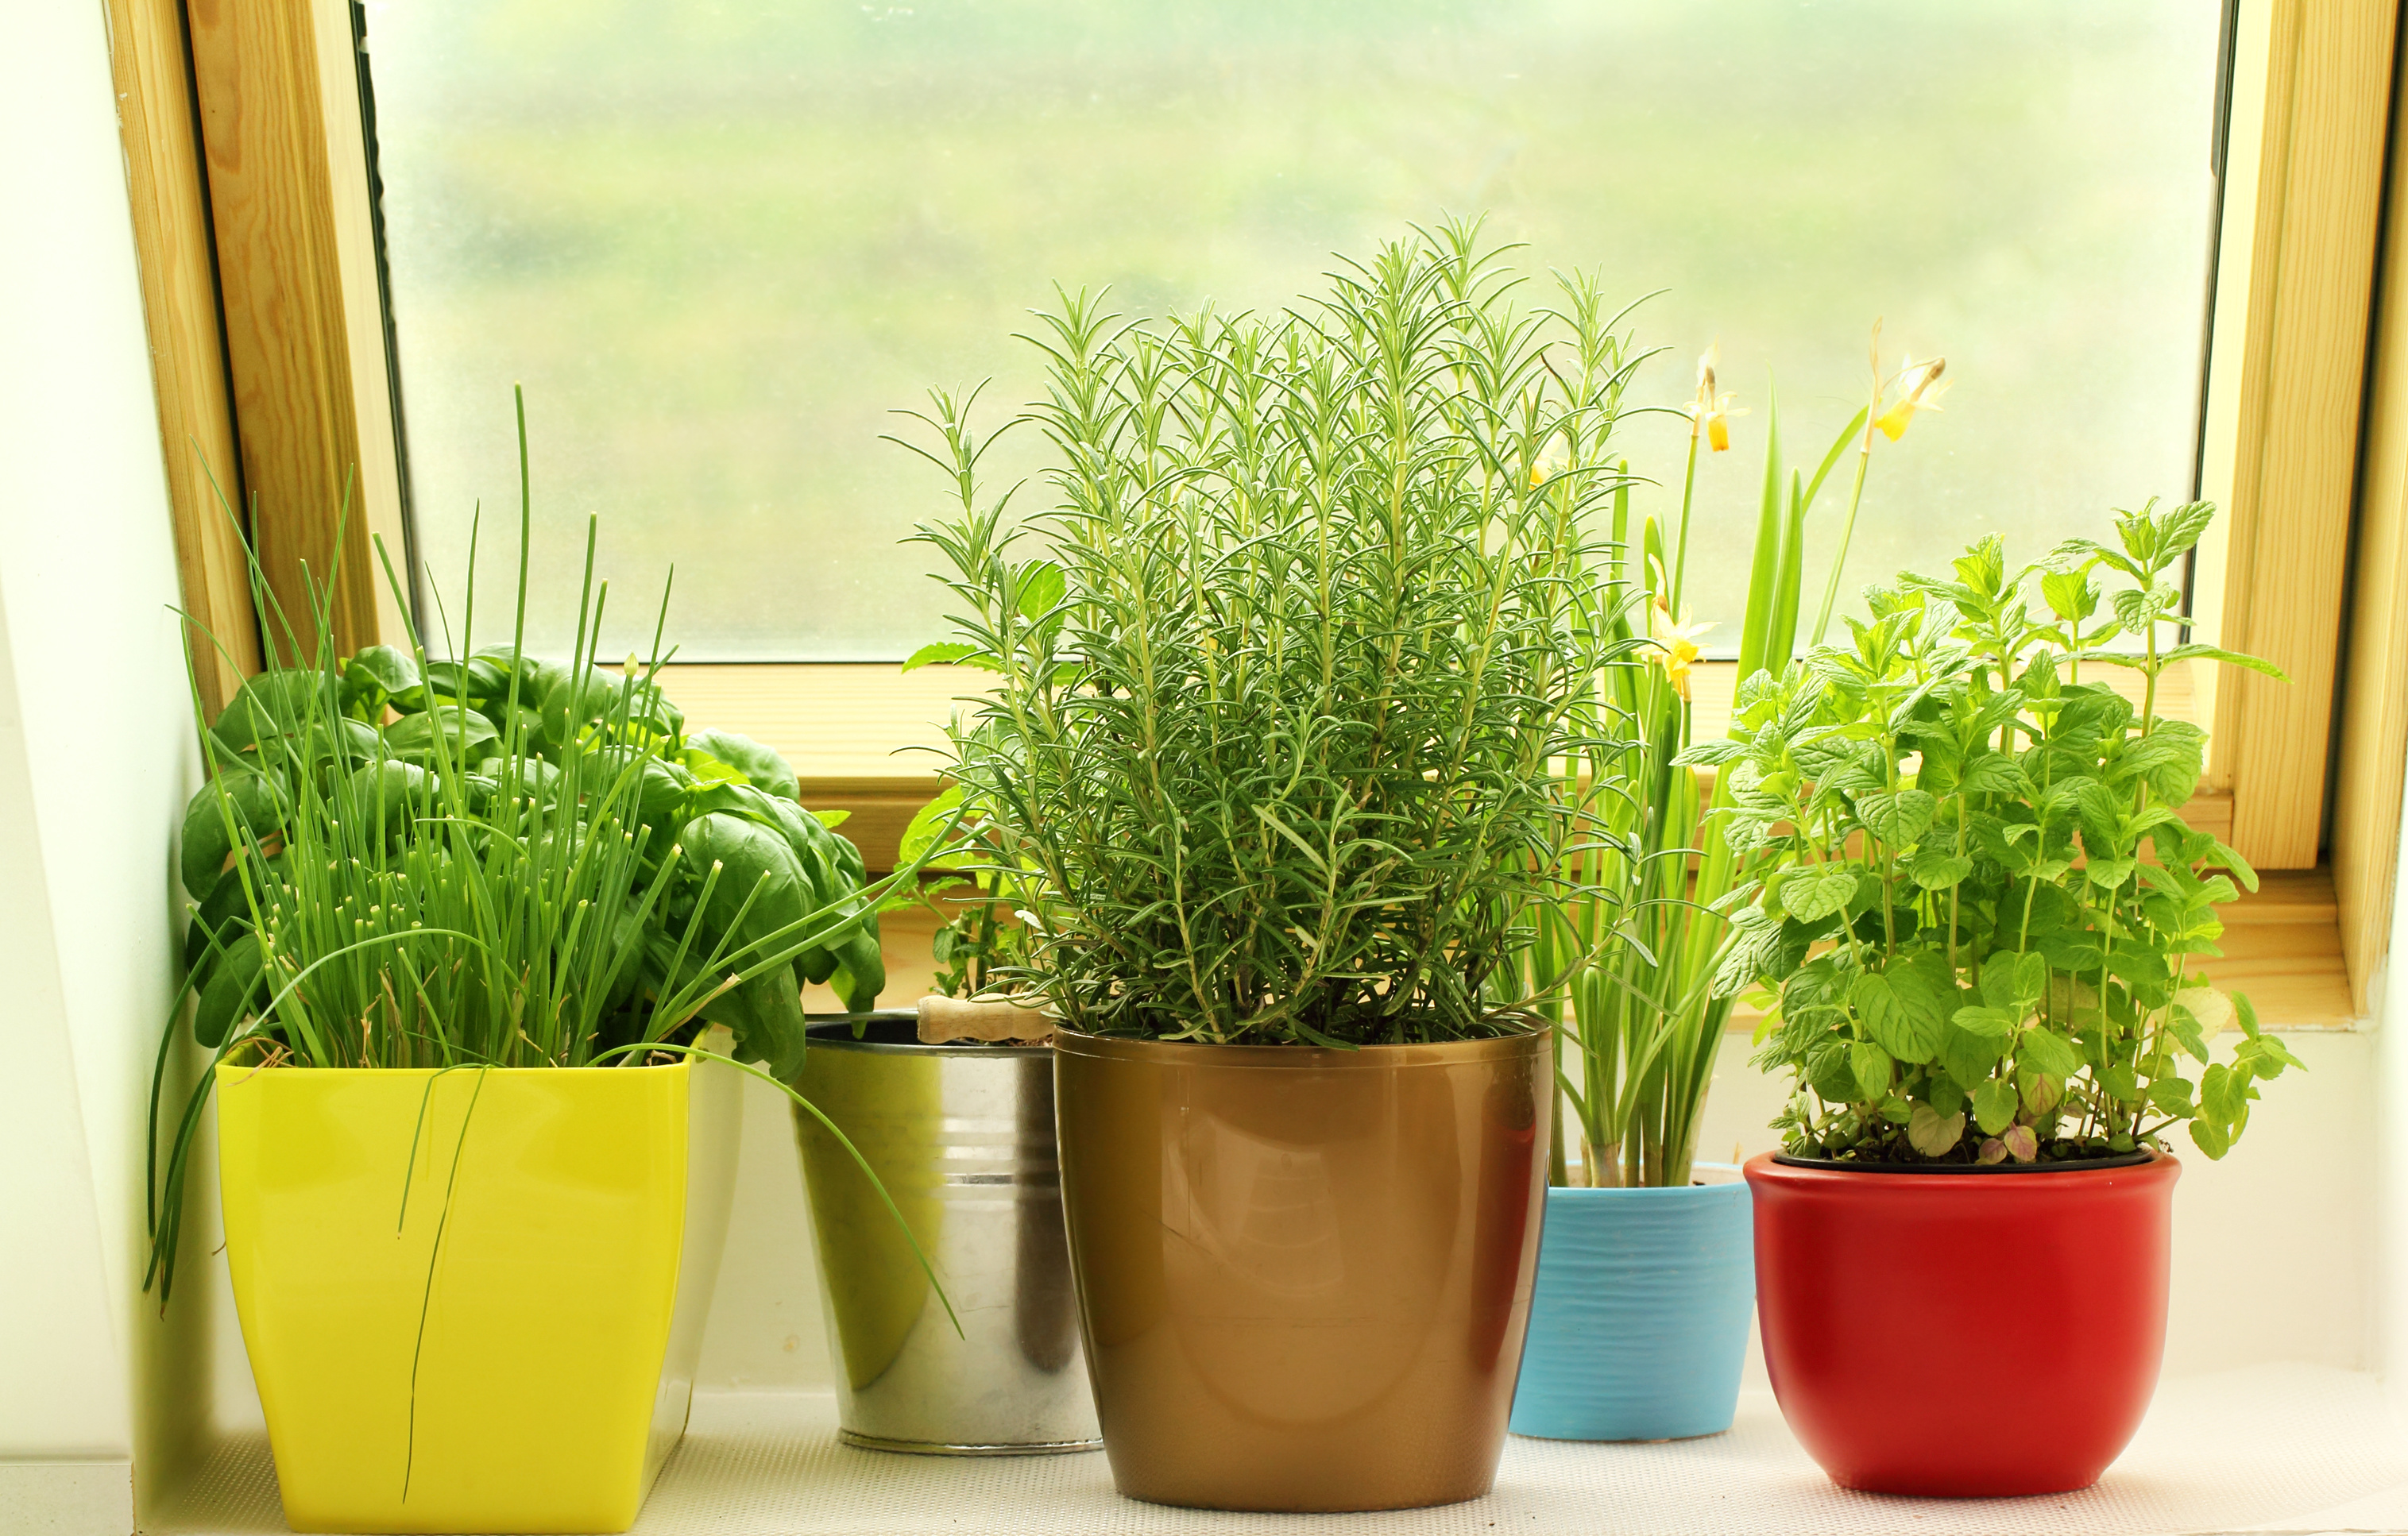 Save Money: Grow Your Own Herbs - Sela Investments : Sela Investments